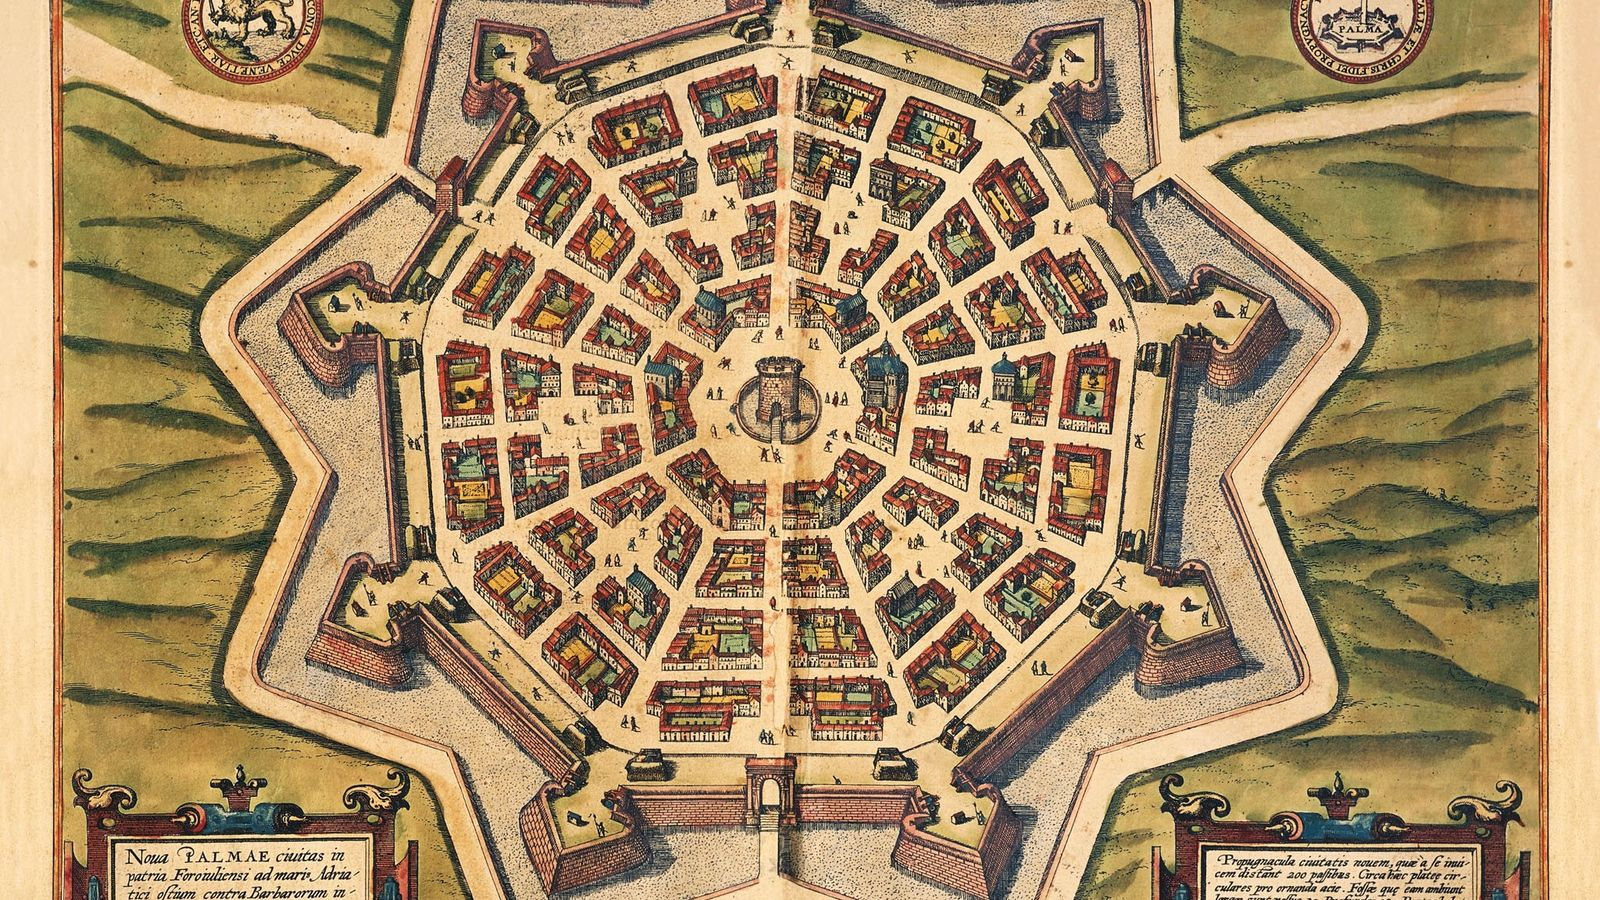 This engraving appears in Civitates Orbis Terrarum (Cities of the World), an atlas of city maps ...